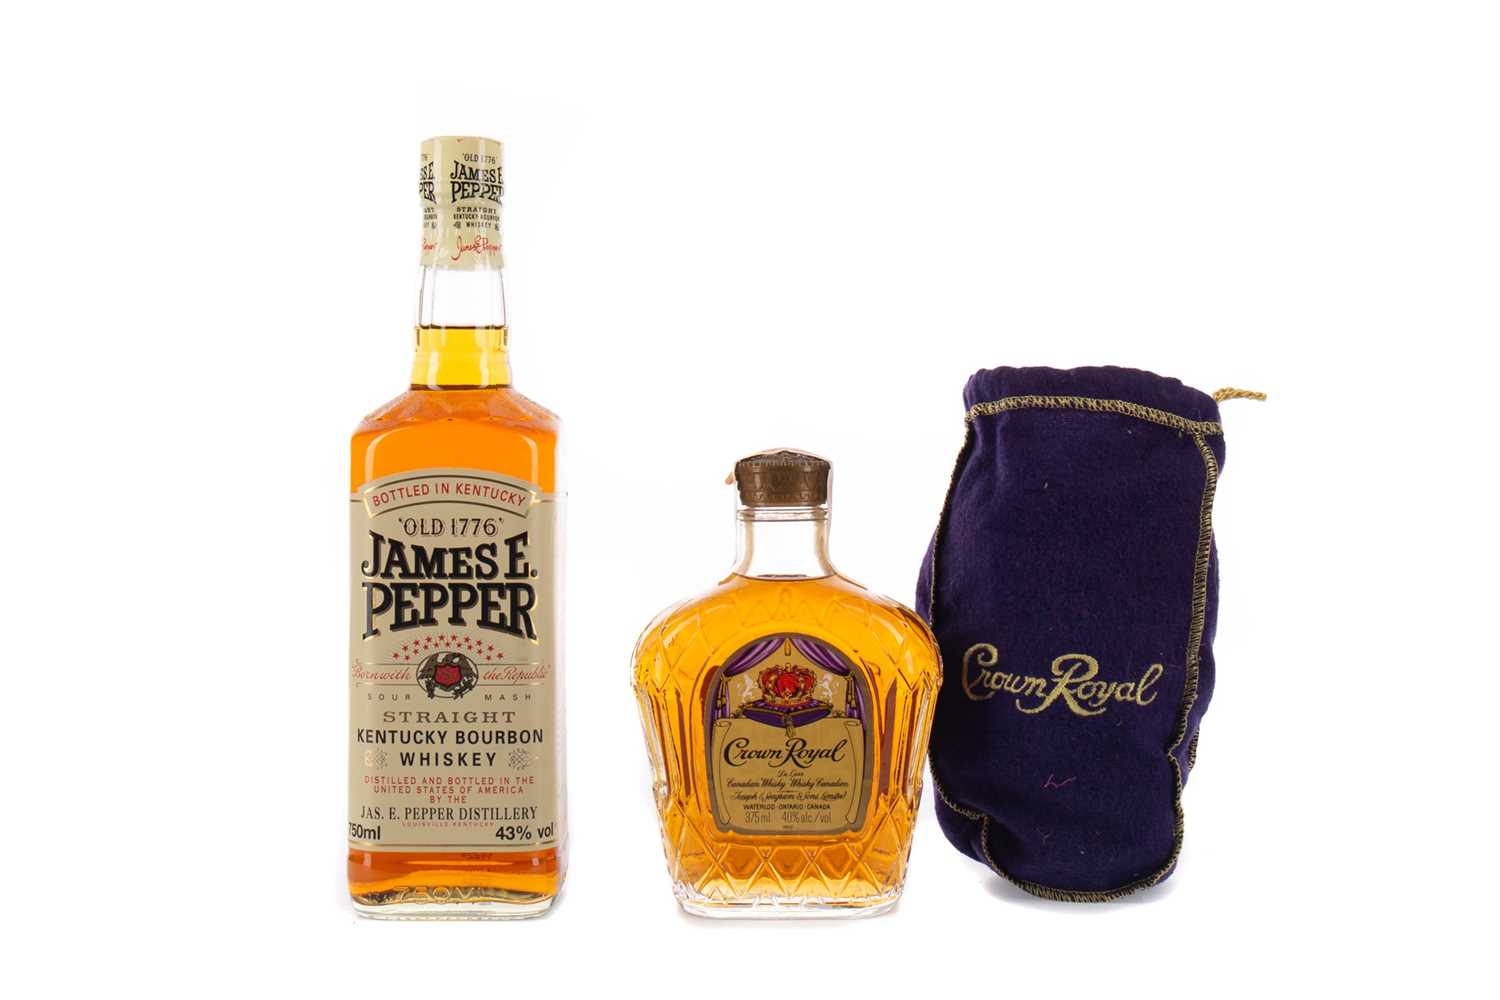 Lot 53 - JAMES E PEPPER AND A HALF BOTTLE OF CROWN ROYAL